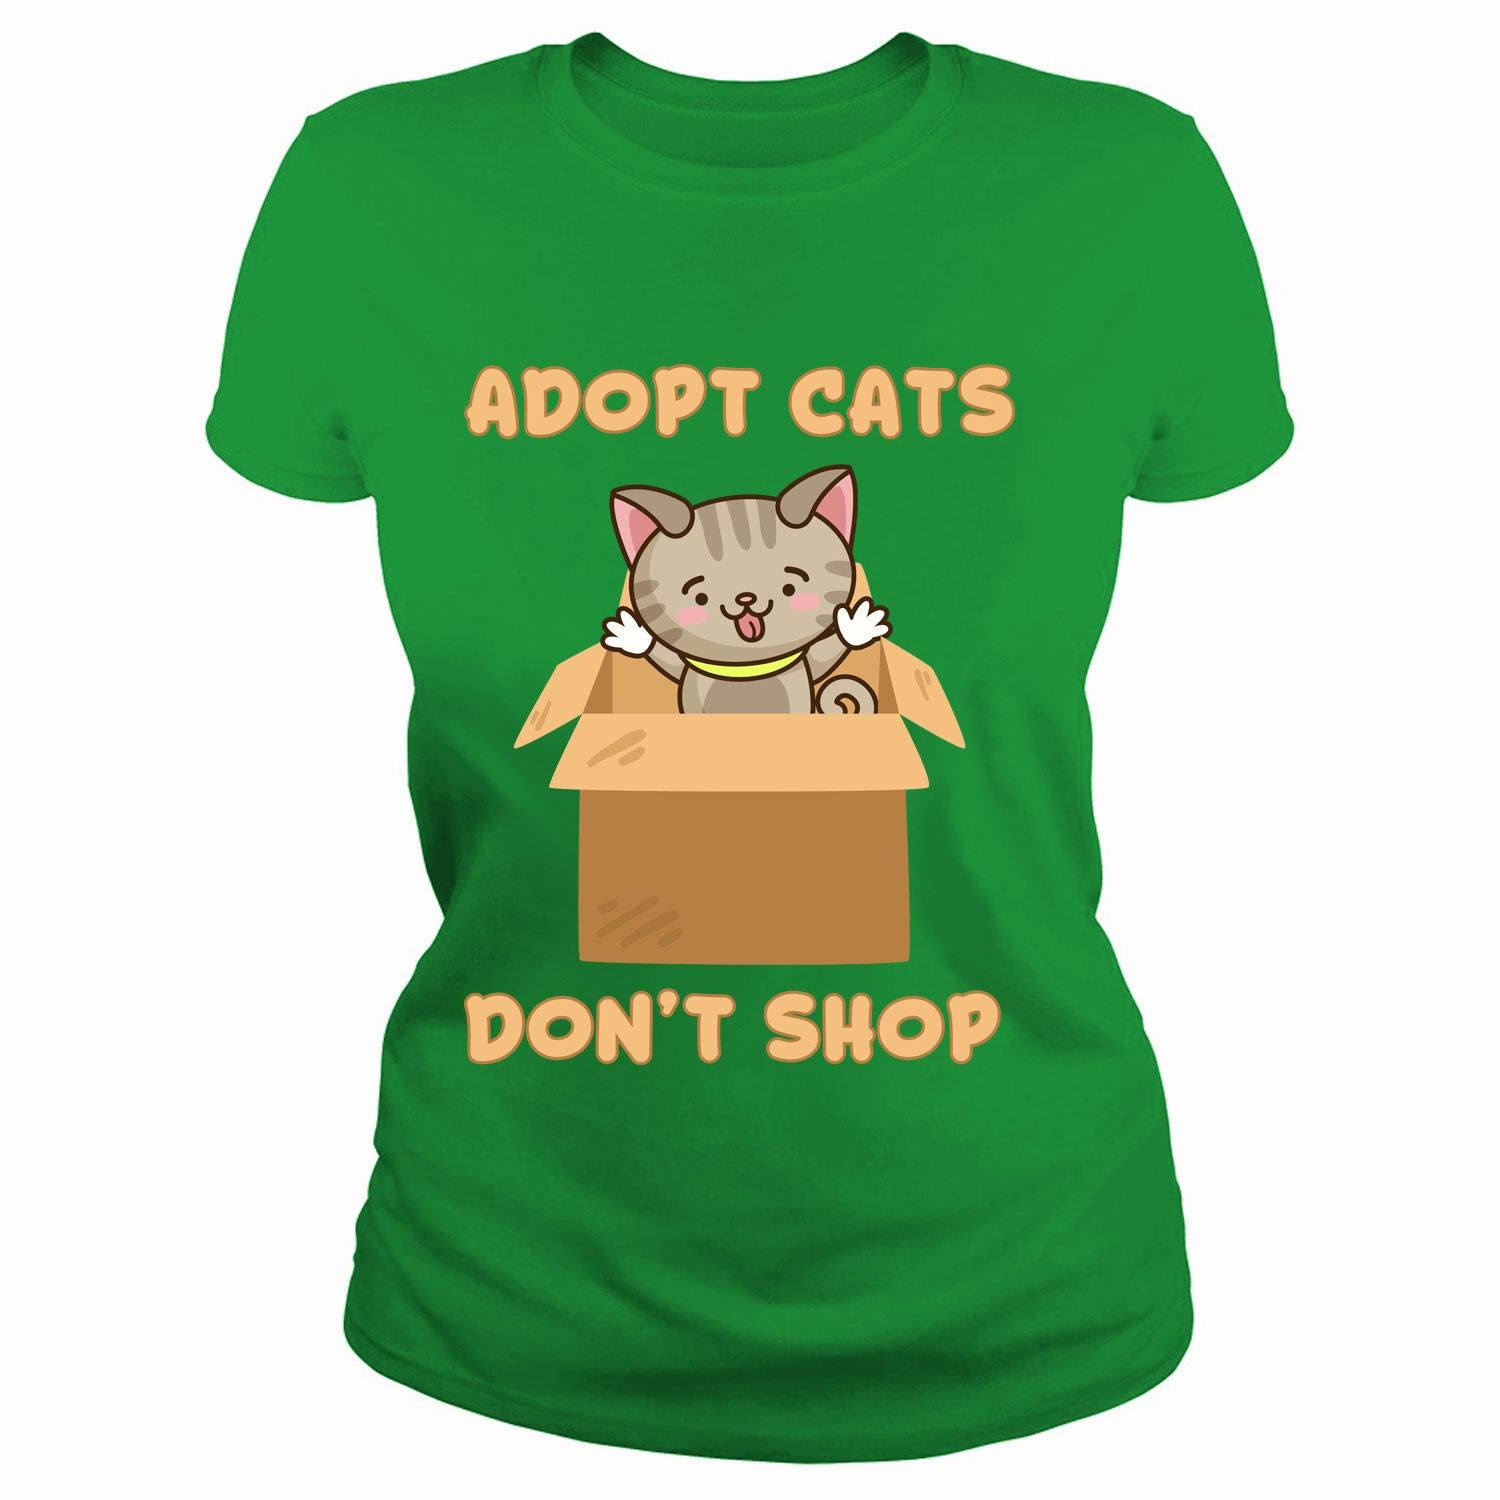 Adopt cats don't shop